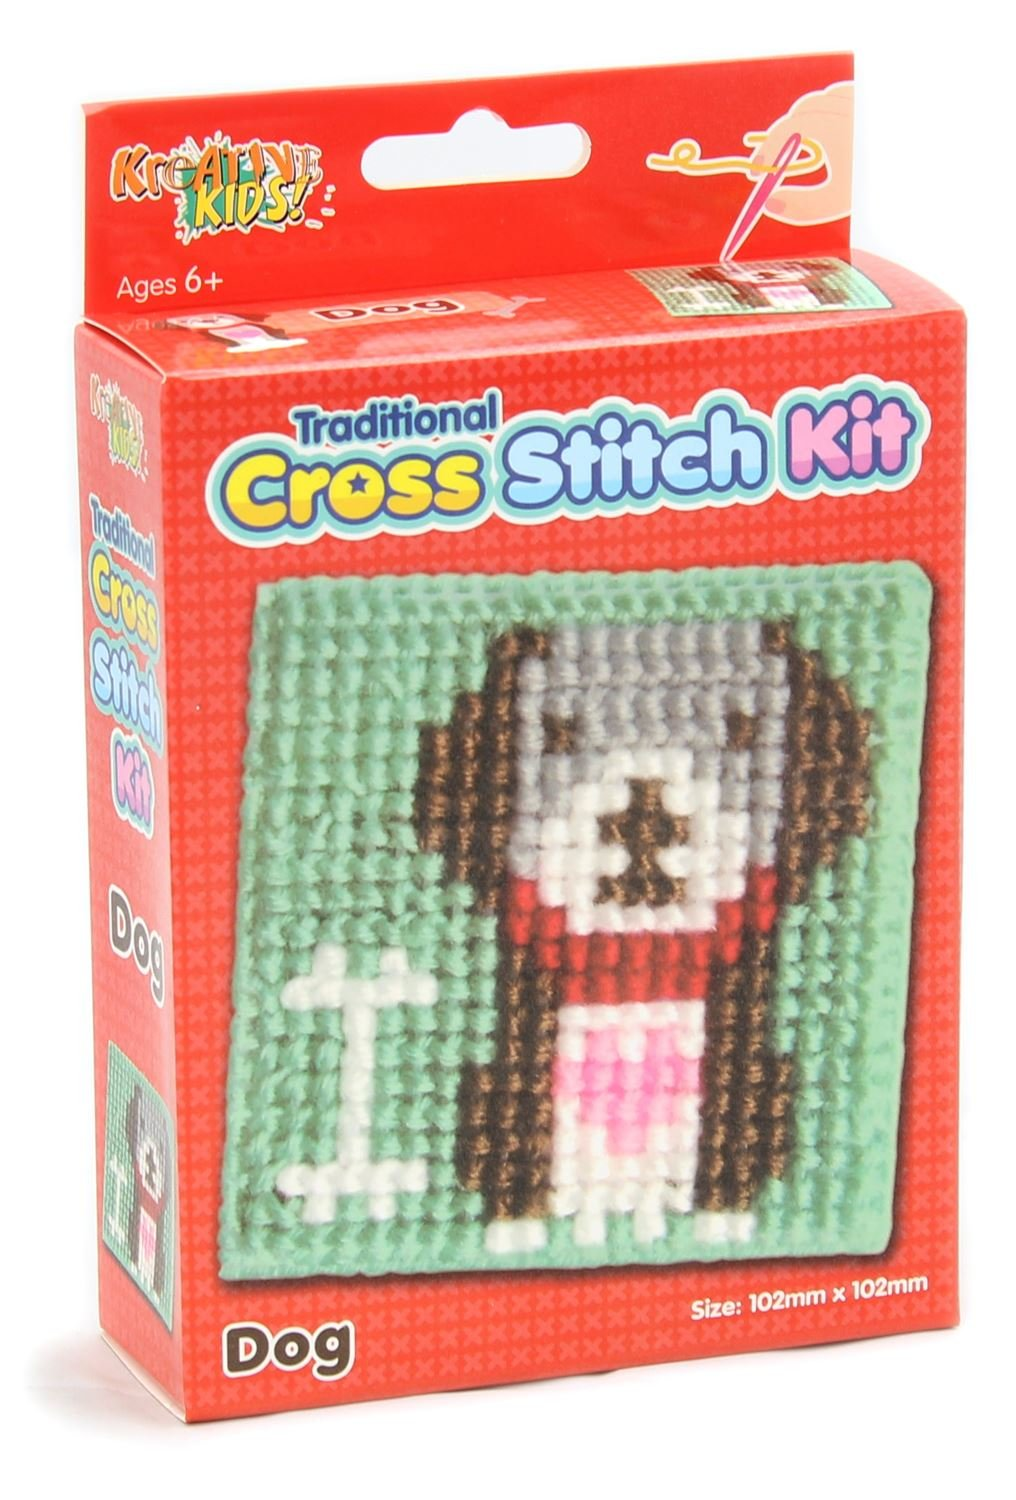 Kreative Kids Traditional Cross Stitch Kit For Children Tapestry Sewing Craft Set ~ Dog Kandytoys